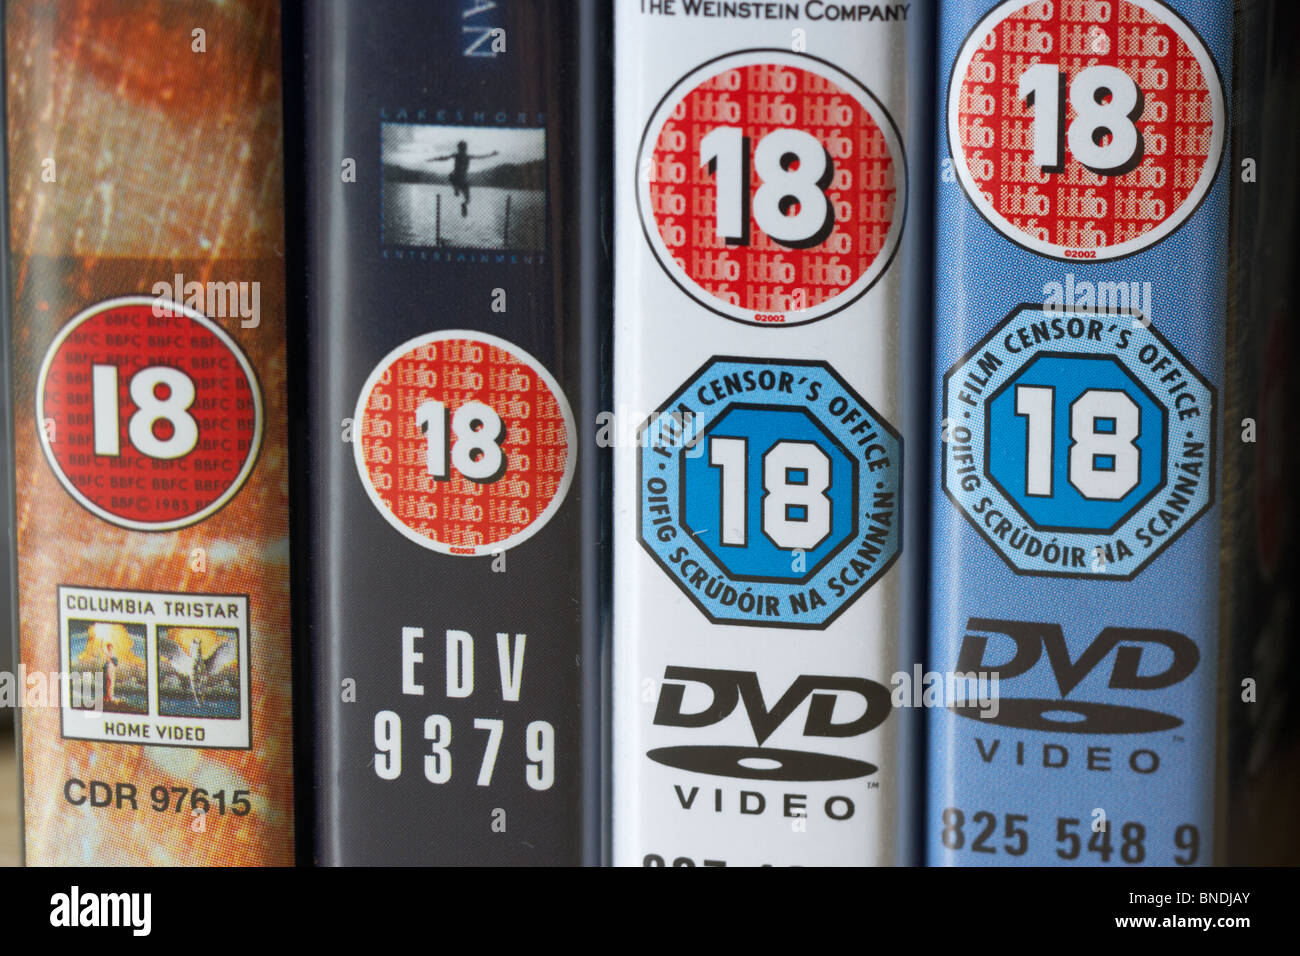 row of dvd video cases showing bbfc and irish film censors